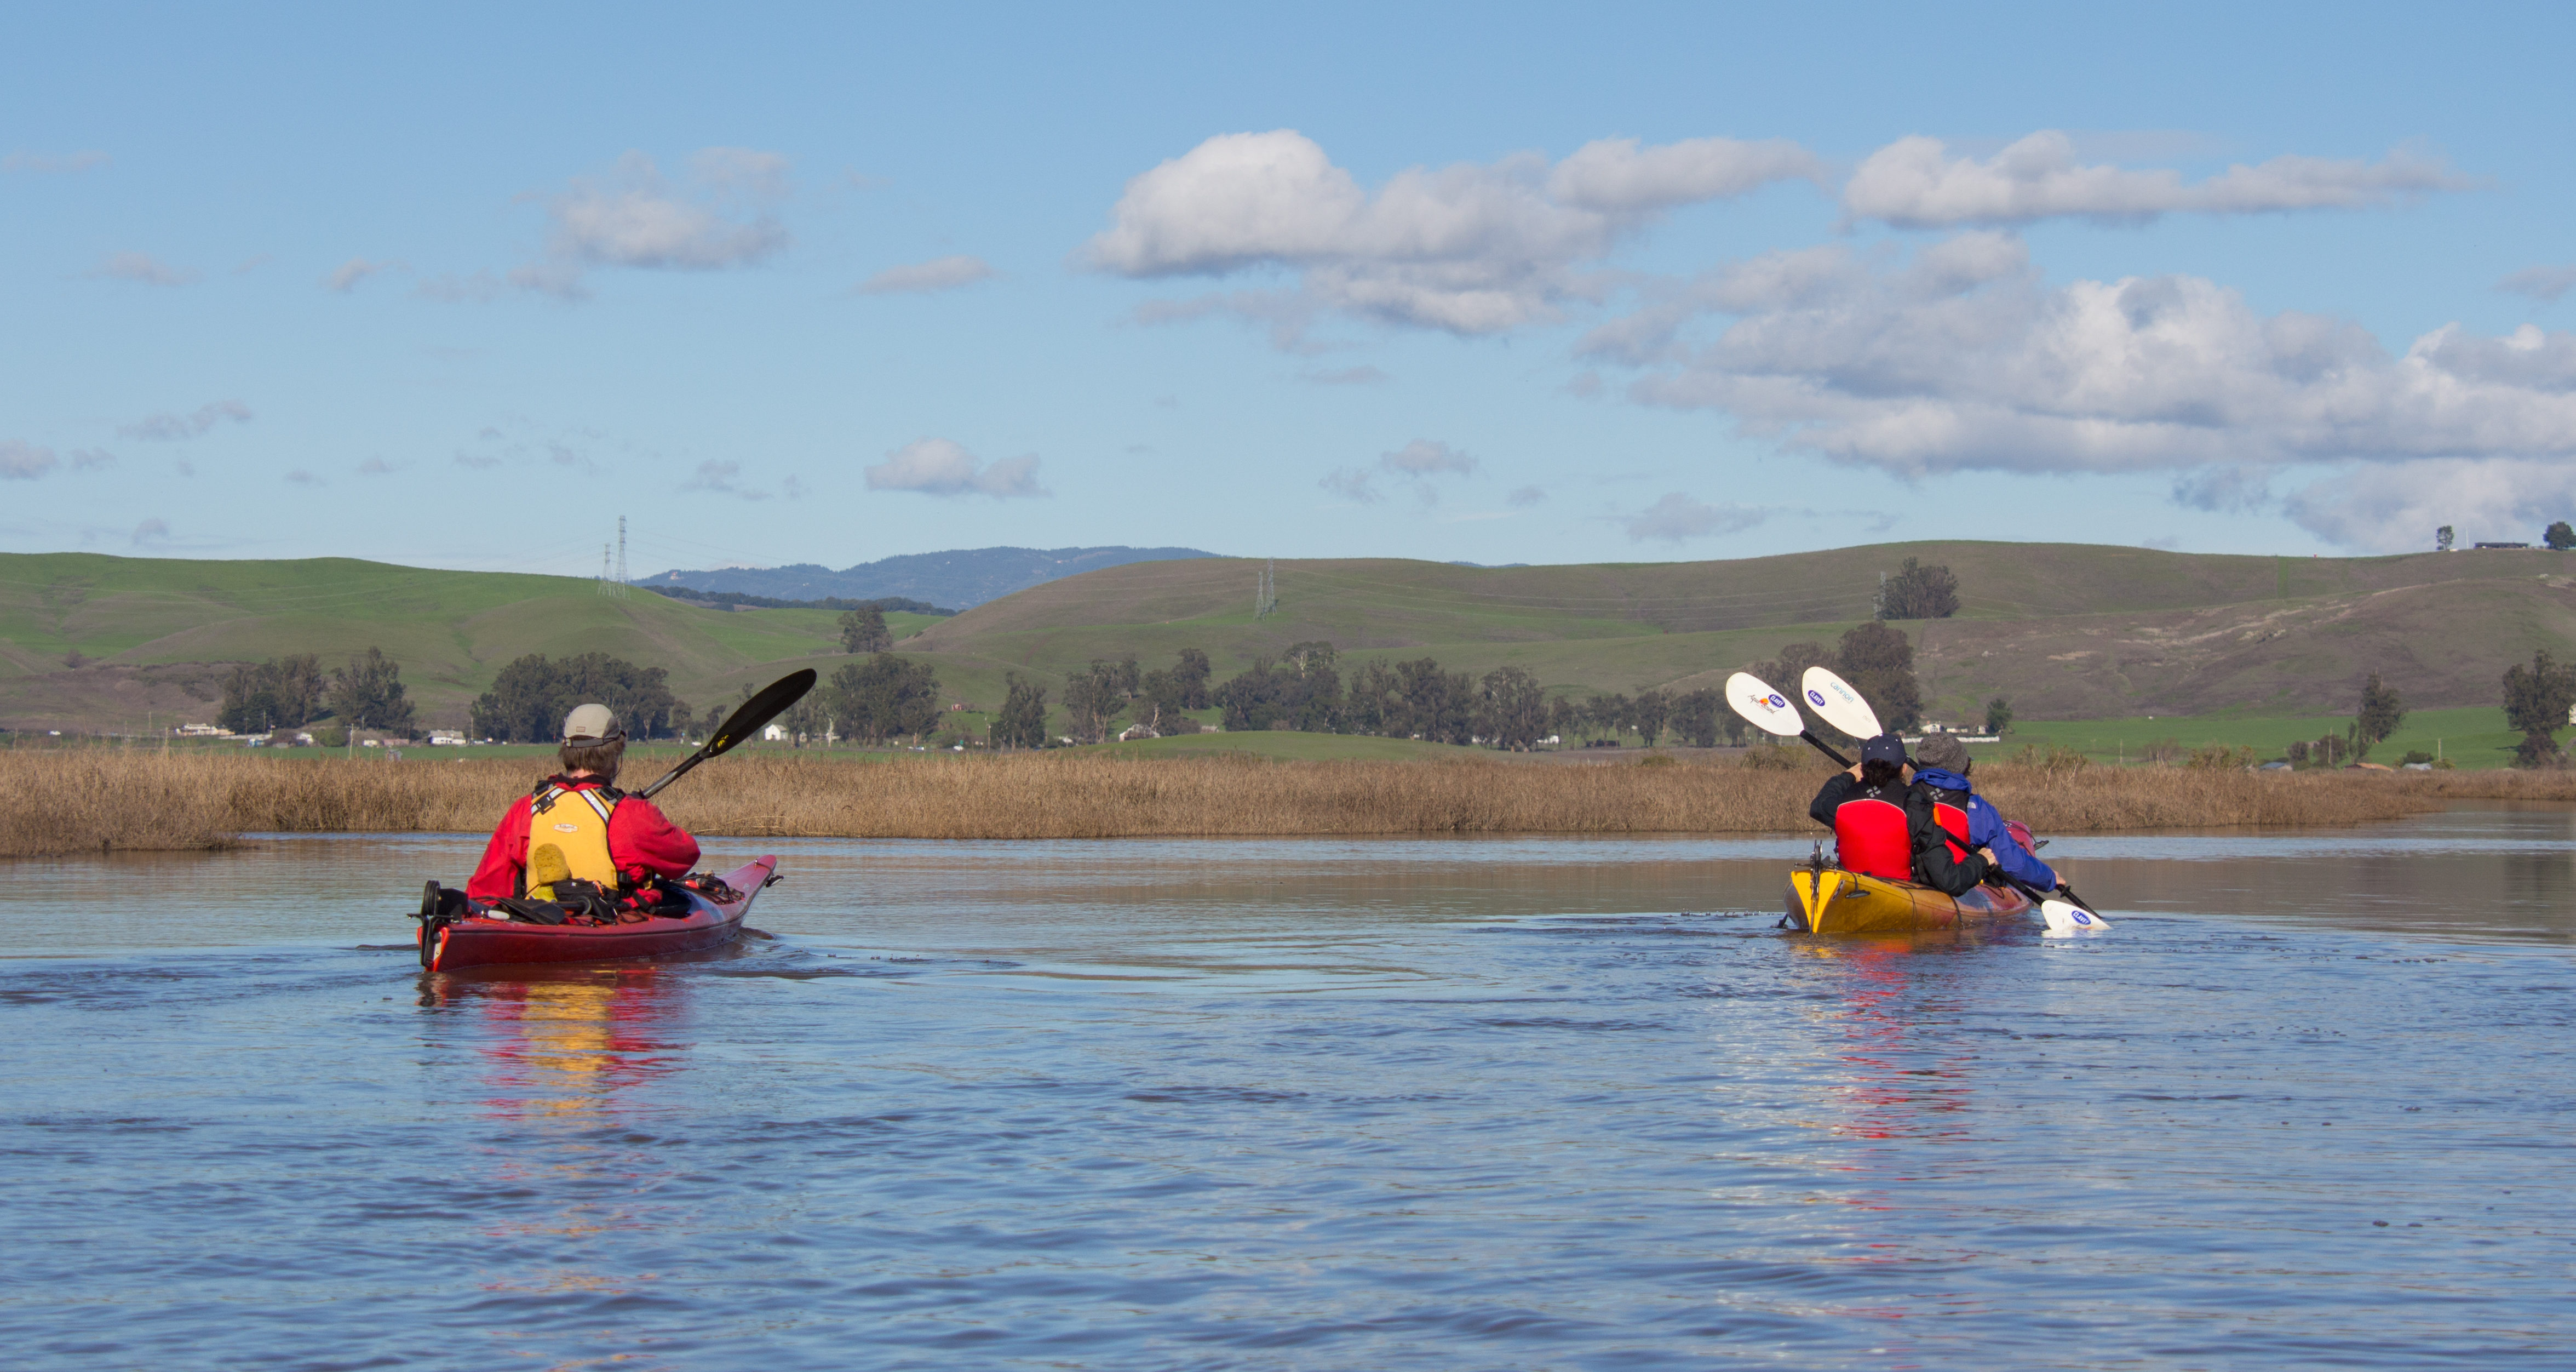 two kayakers paddling away from camera, toward marsh and green hills in distance